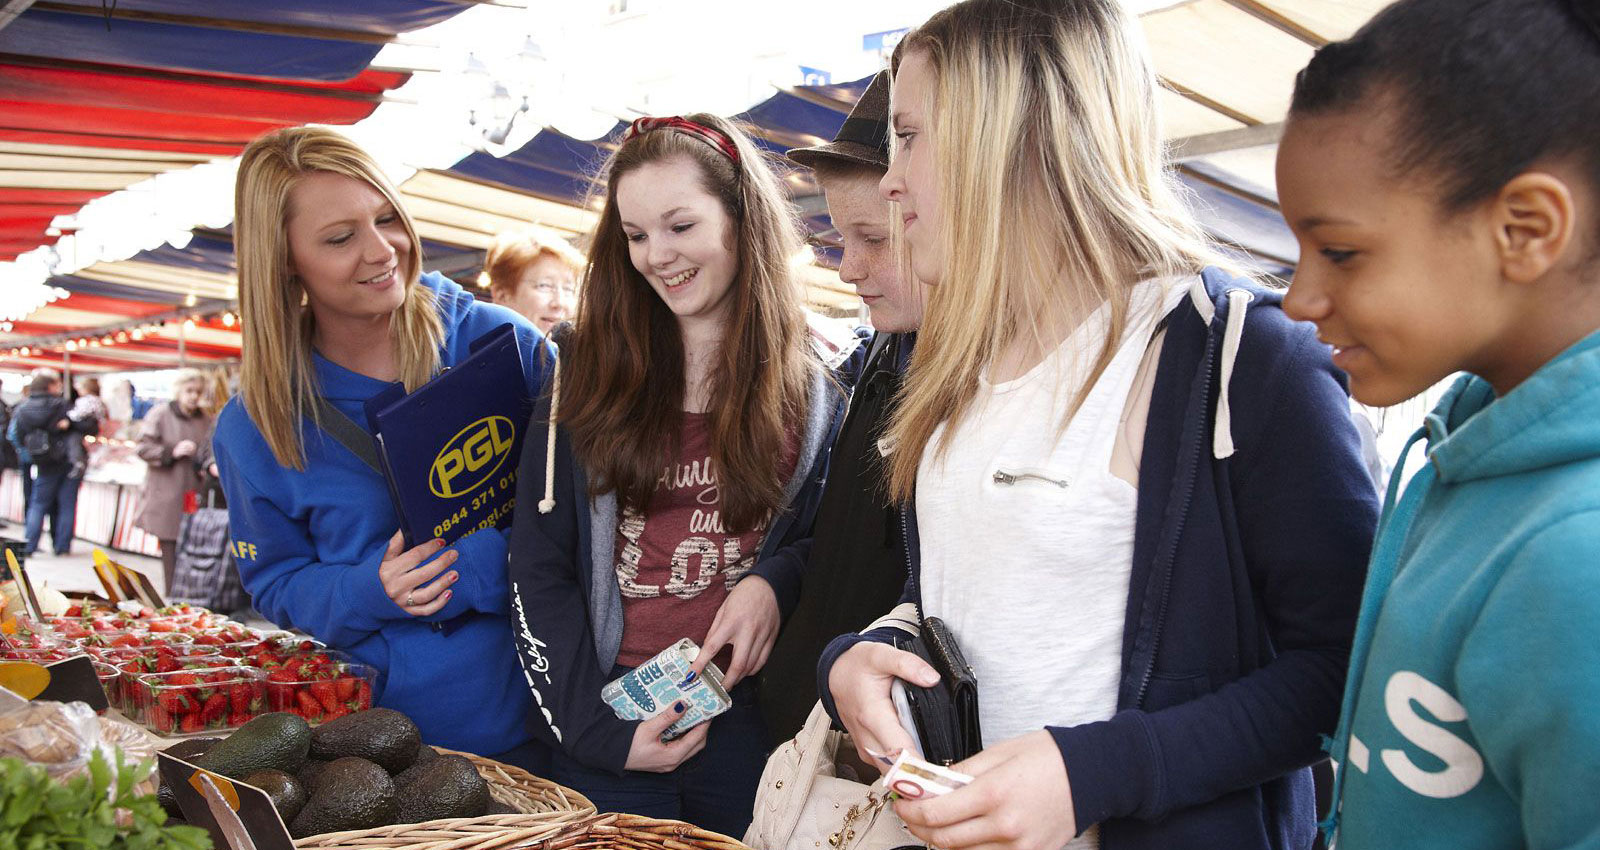 A Level French Trip : Practise oral French at a local market